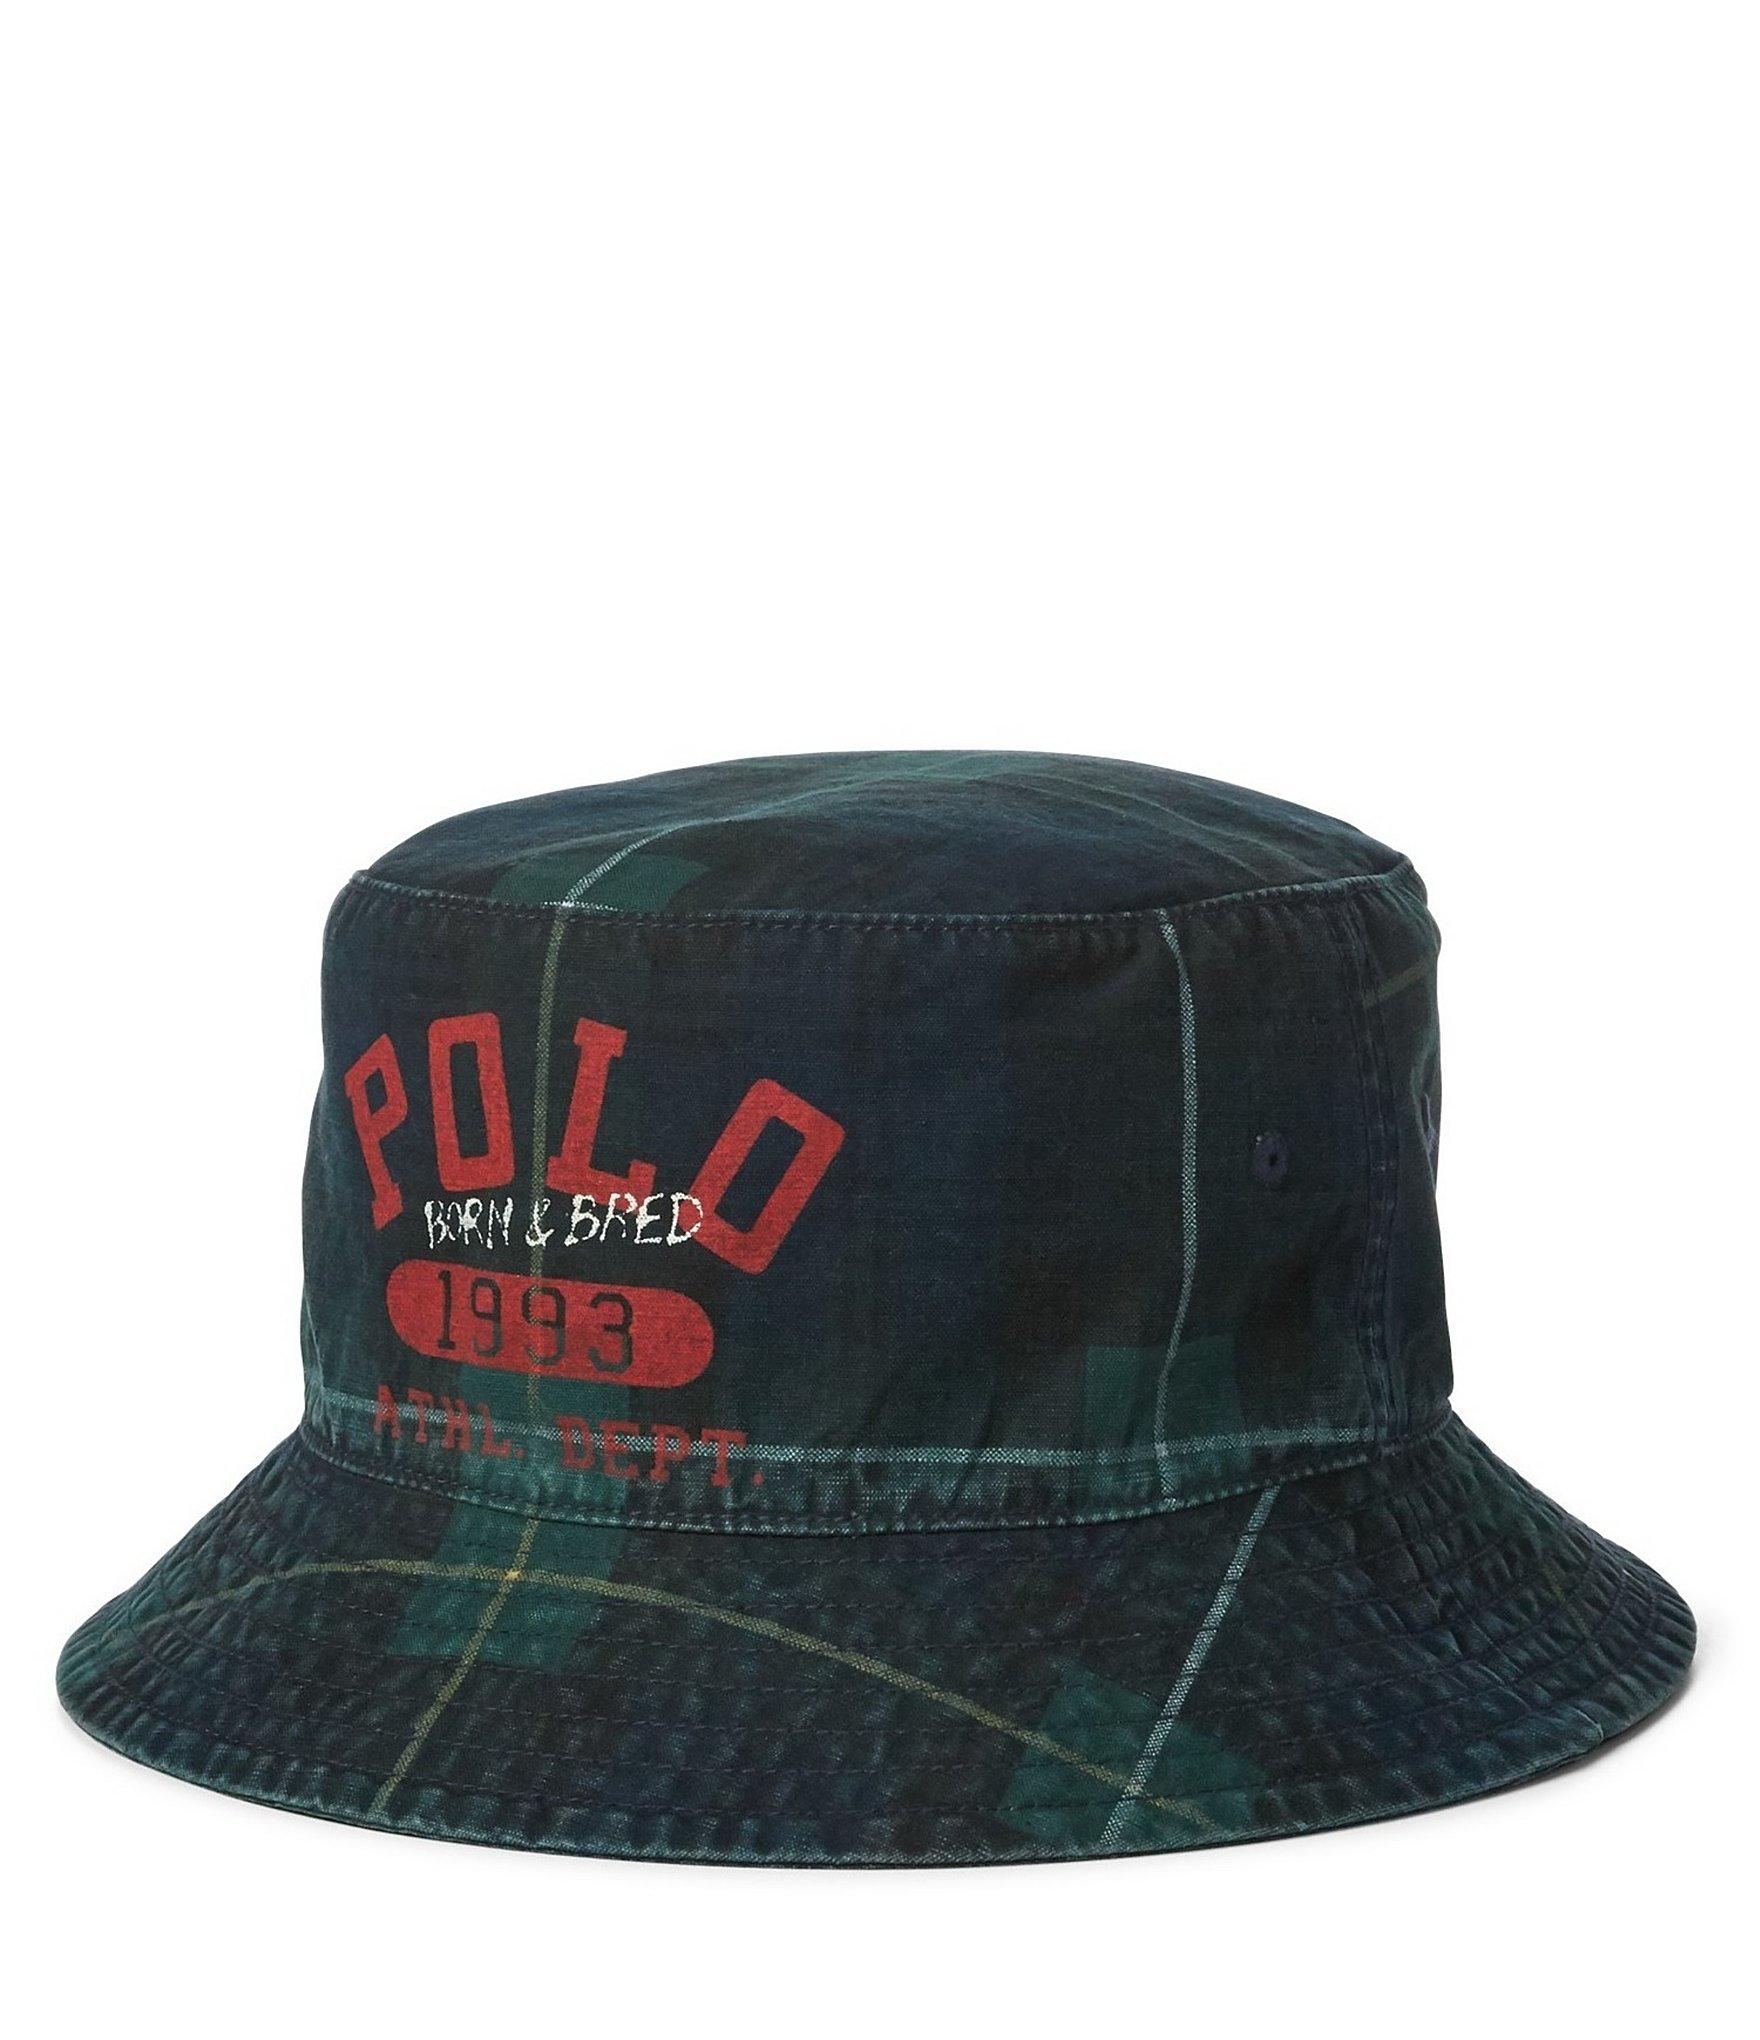 a216a885 Polo Ralph Lauren Yale Bucket Hat in Green for Men - Lyst